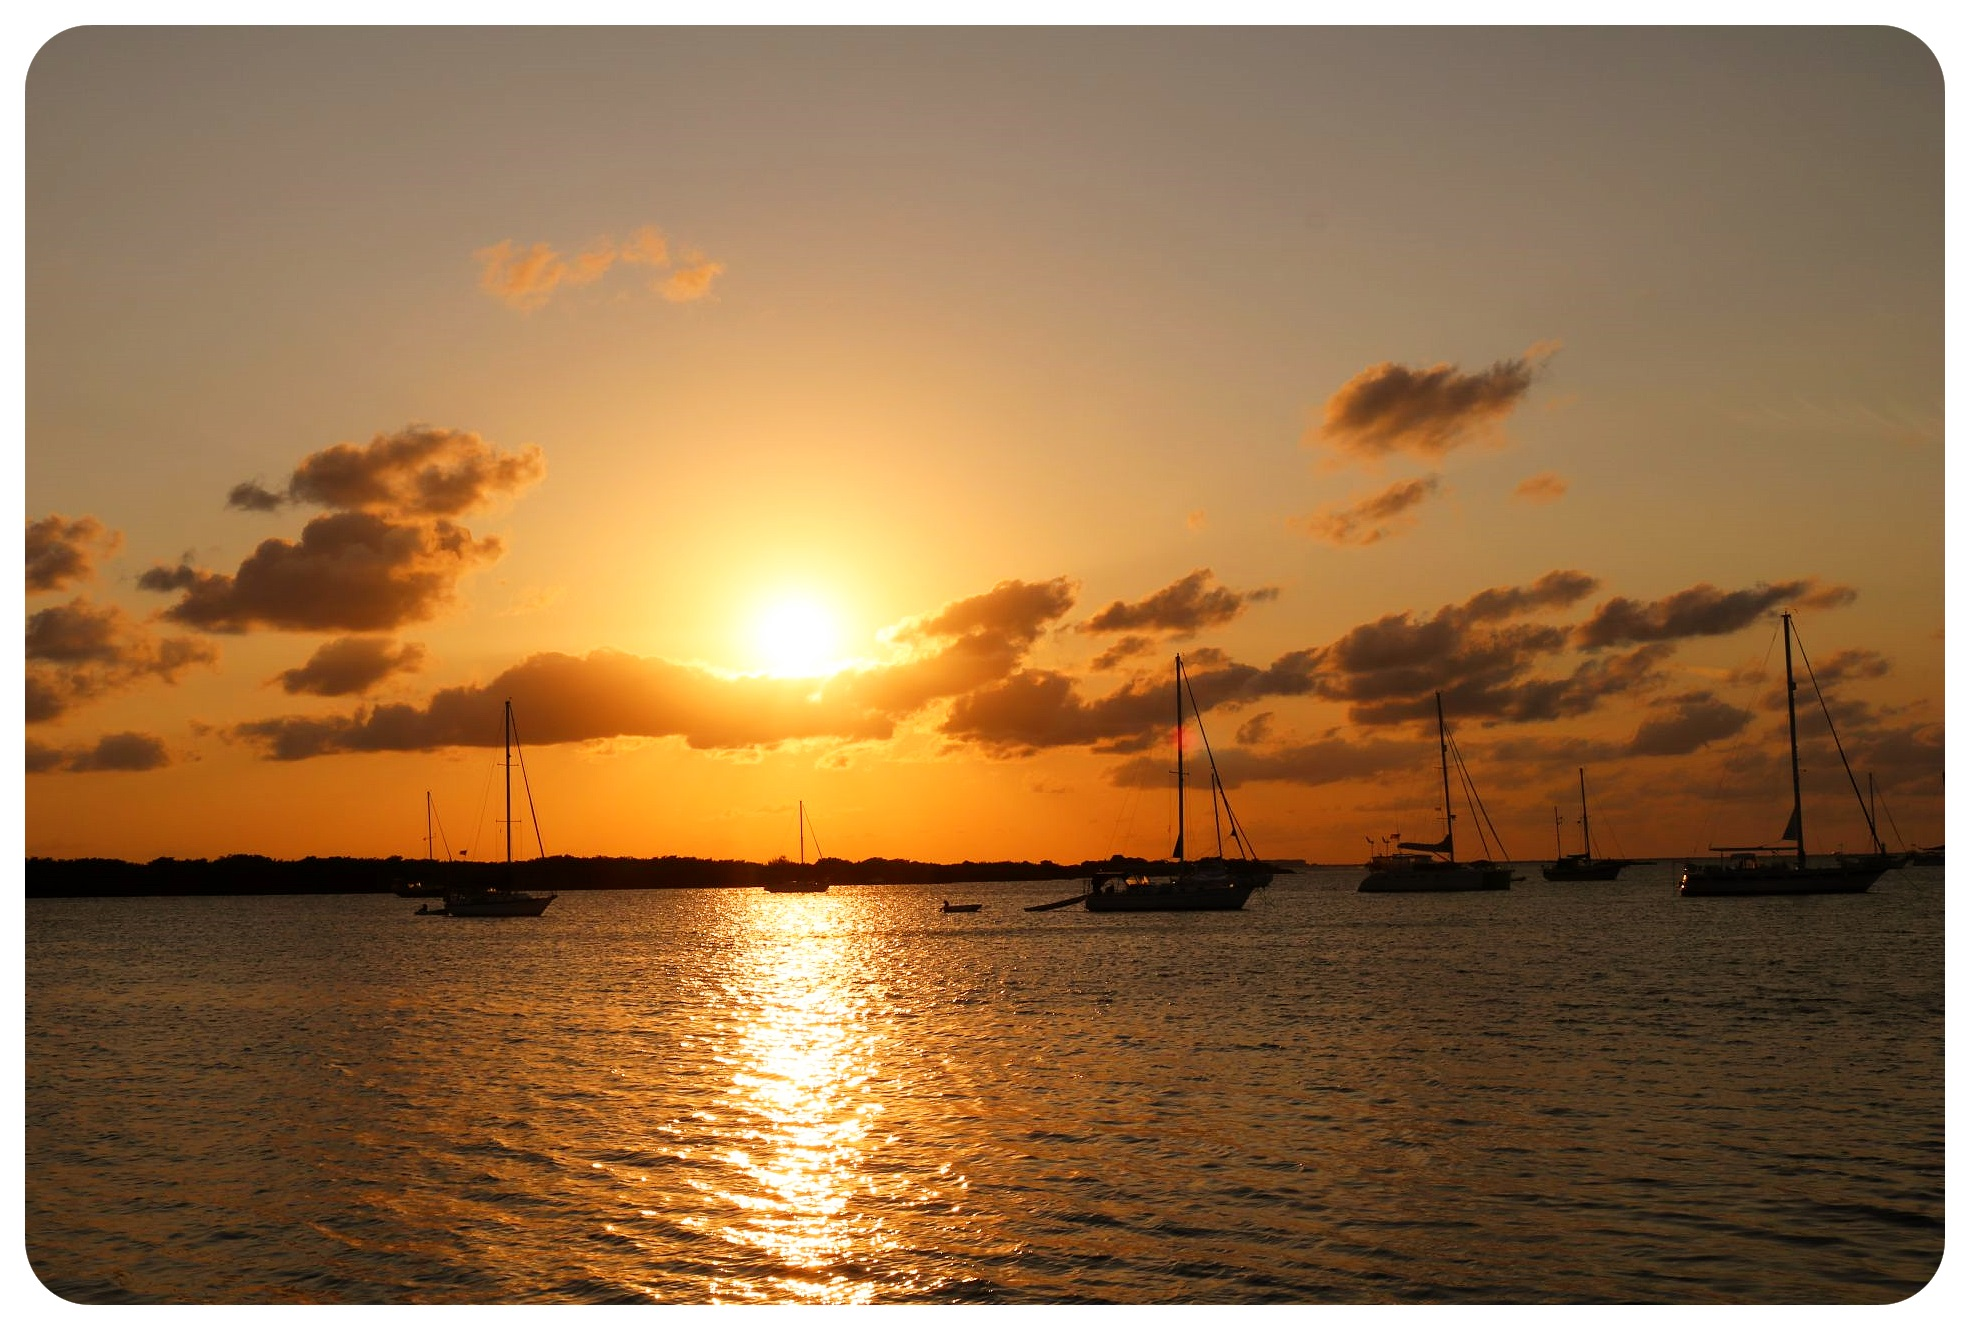 isla mujeres sunset with boats